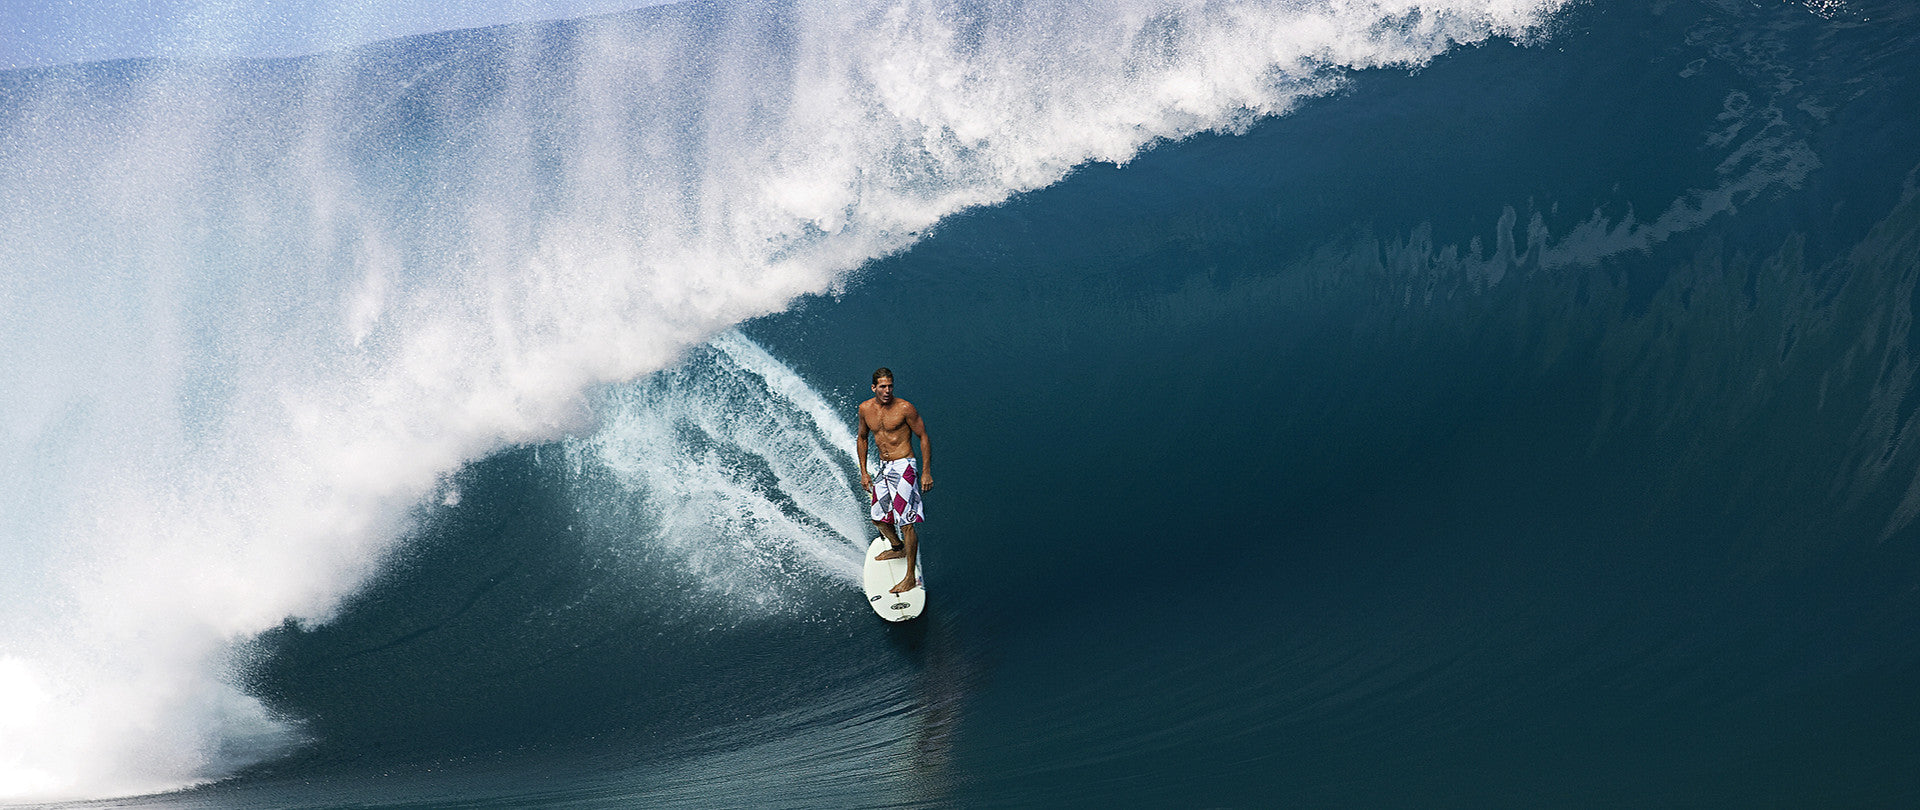 GIANT 4' X 6' SURFING POSTERS